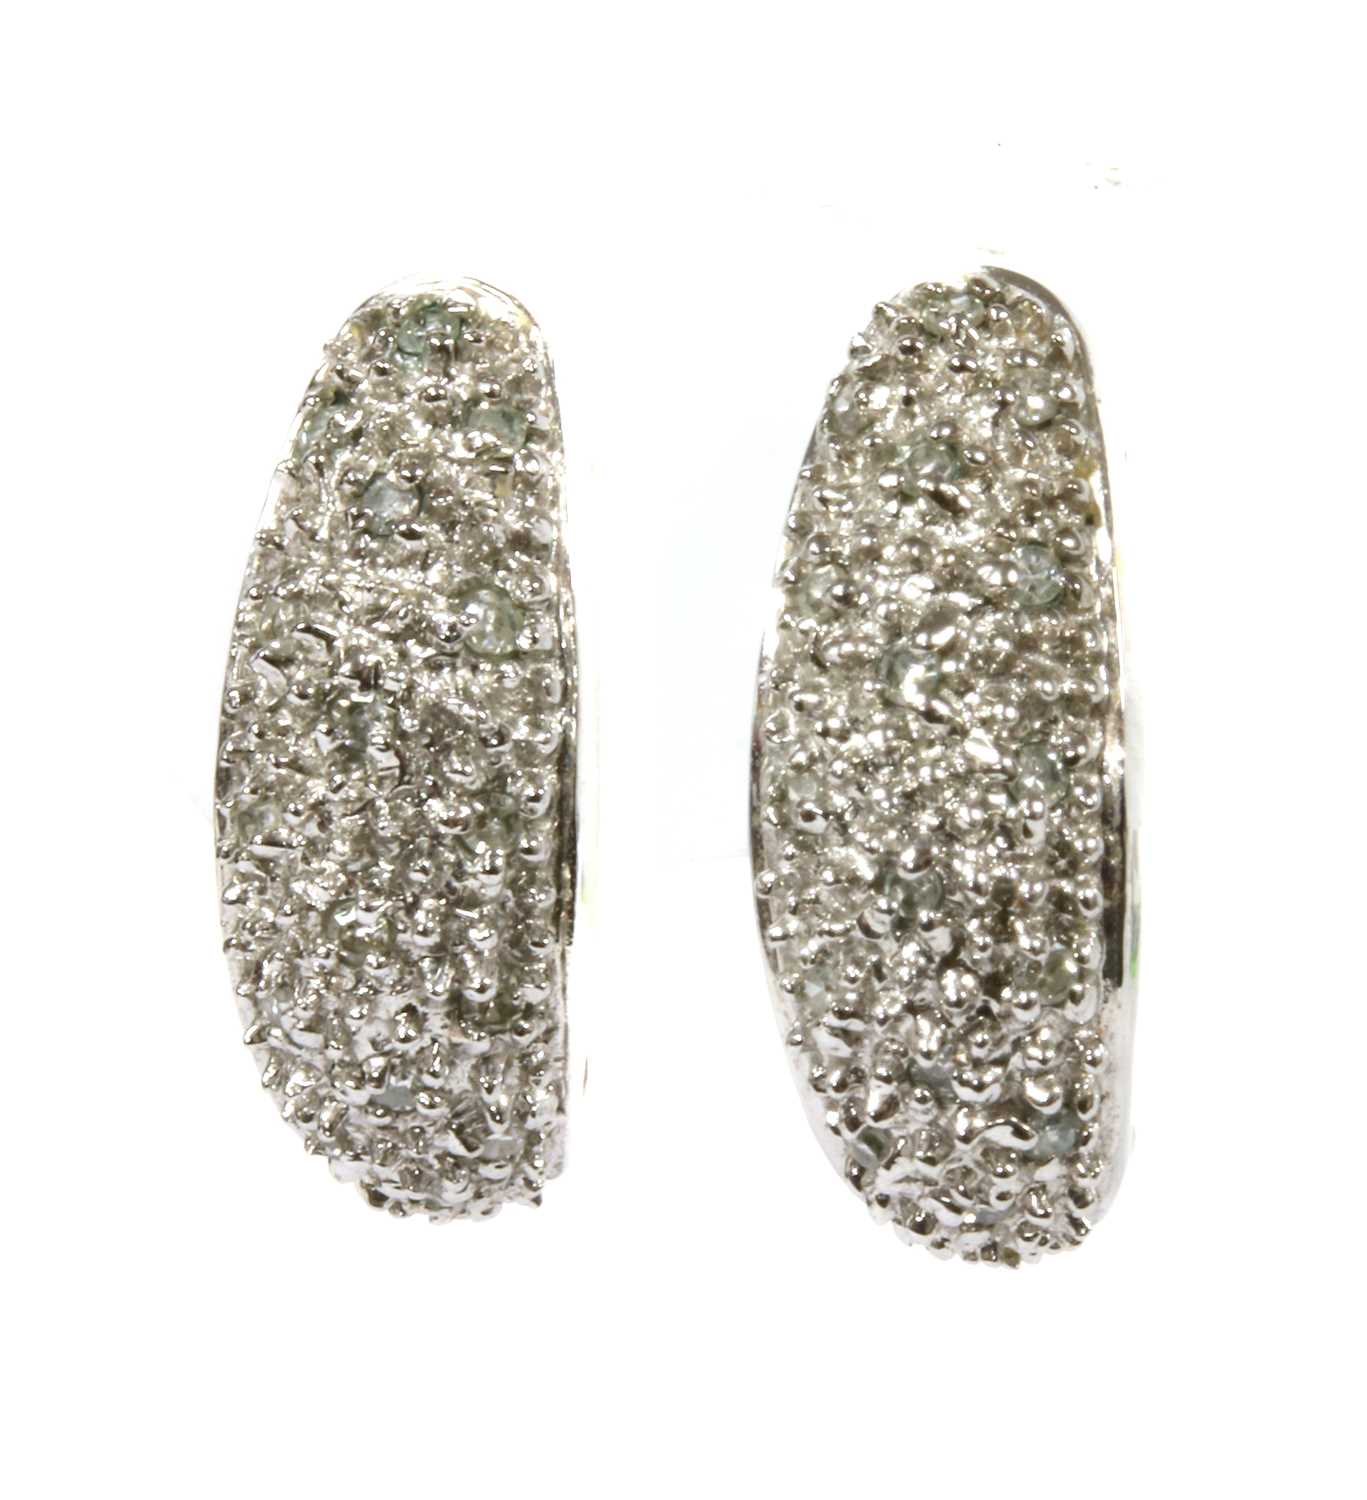 Lot 88 - A pair of 9ct white gold diamond set 'J' hoop earrings